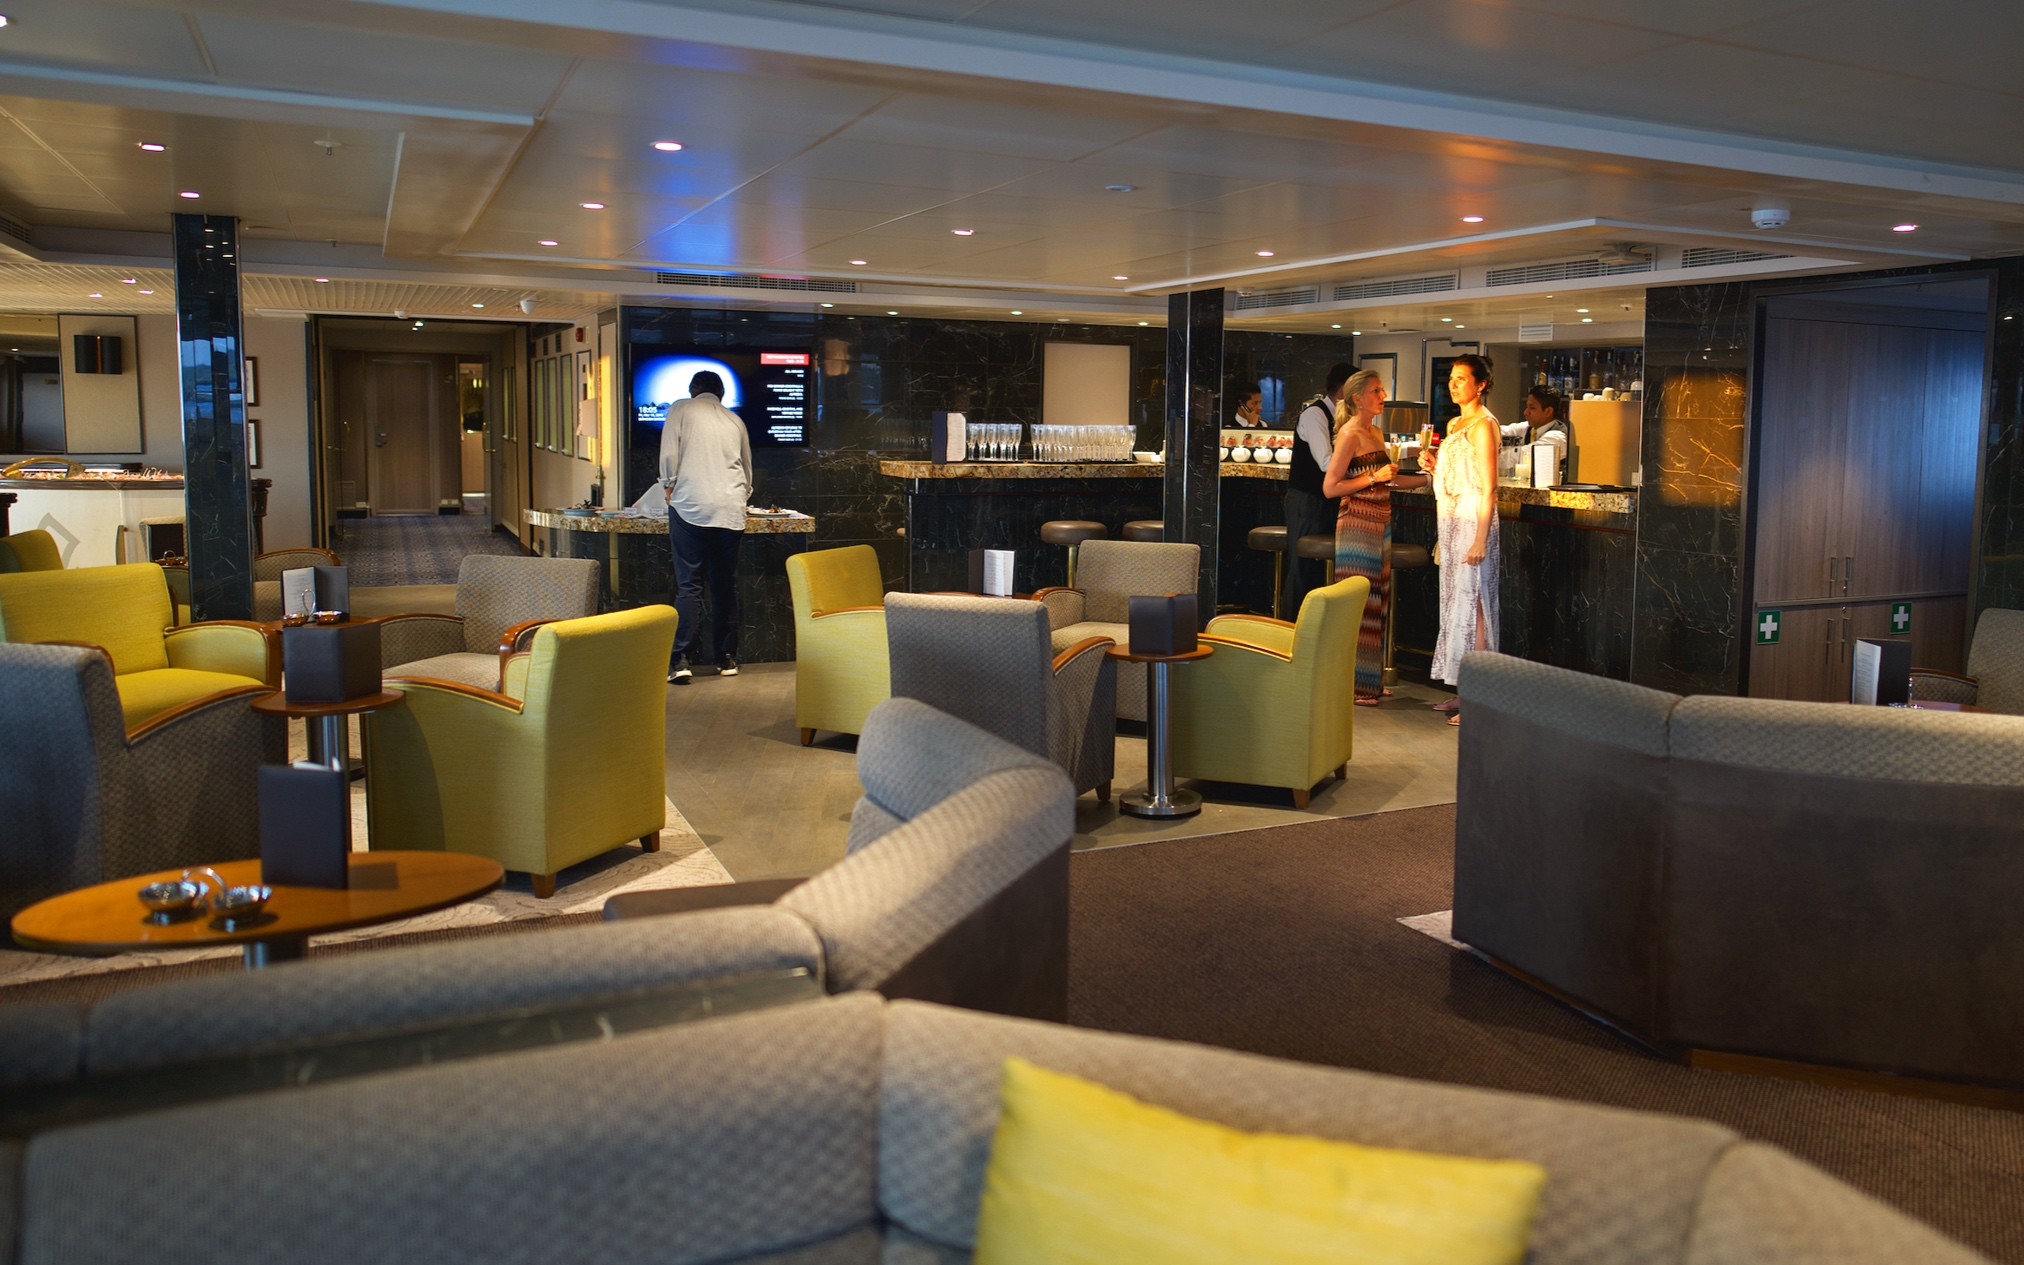 The Piano bar, the hub of the ship.